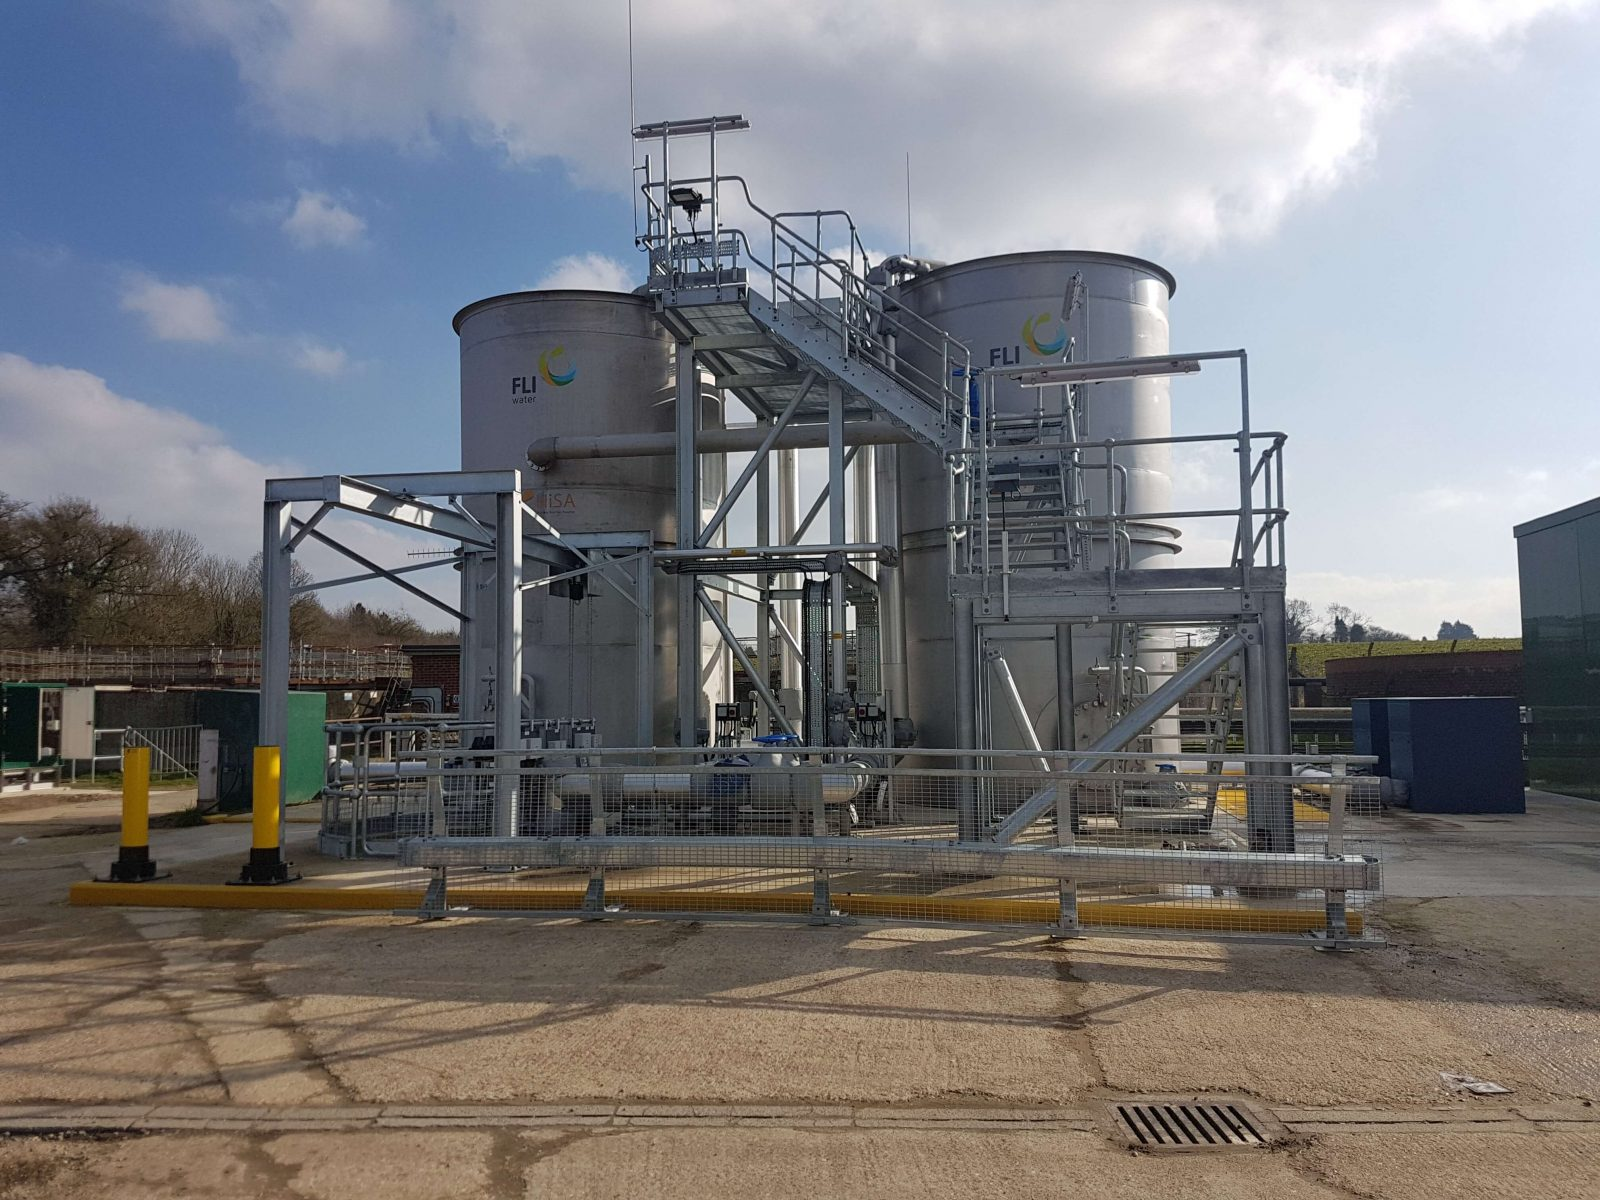 FLI Water Awarded Three HiSA MBBR Projects